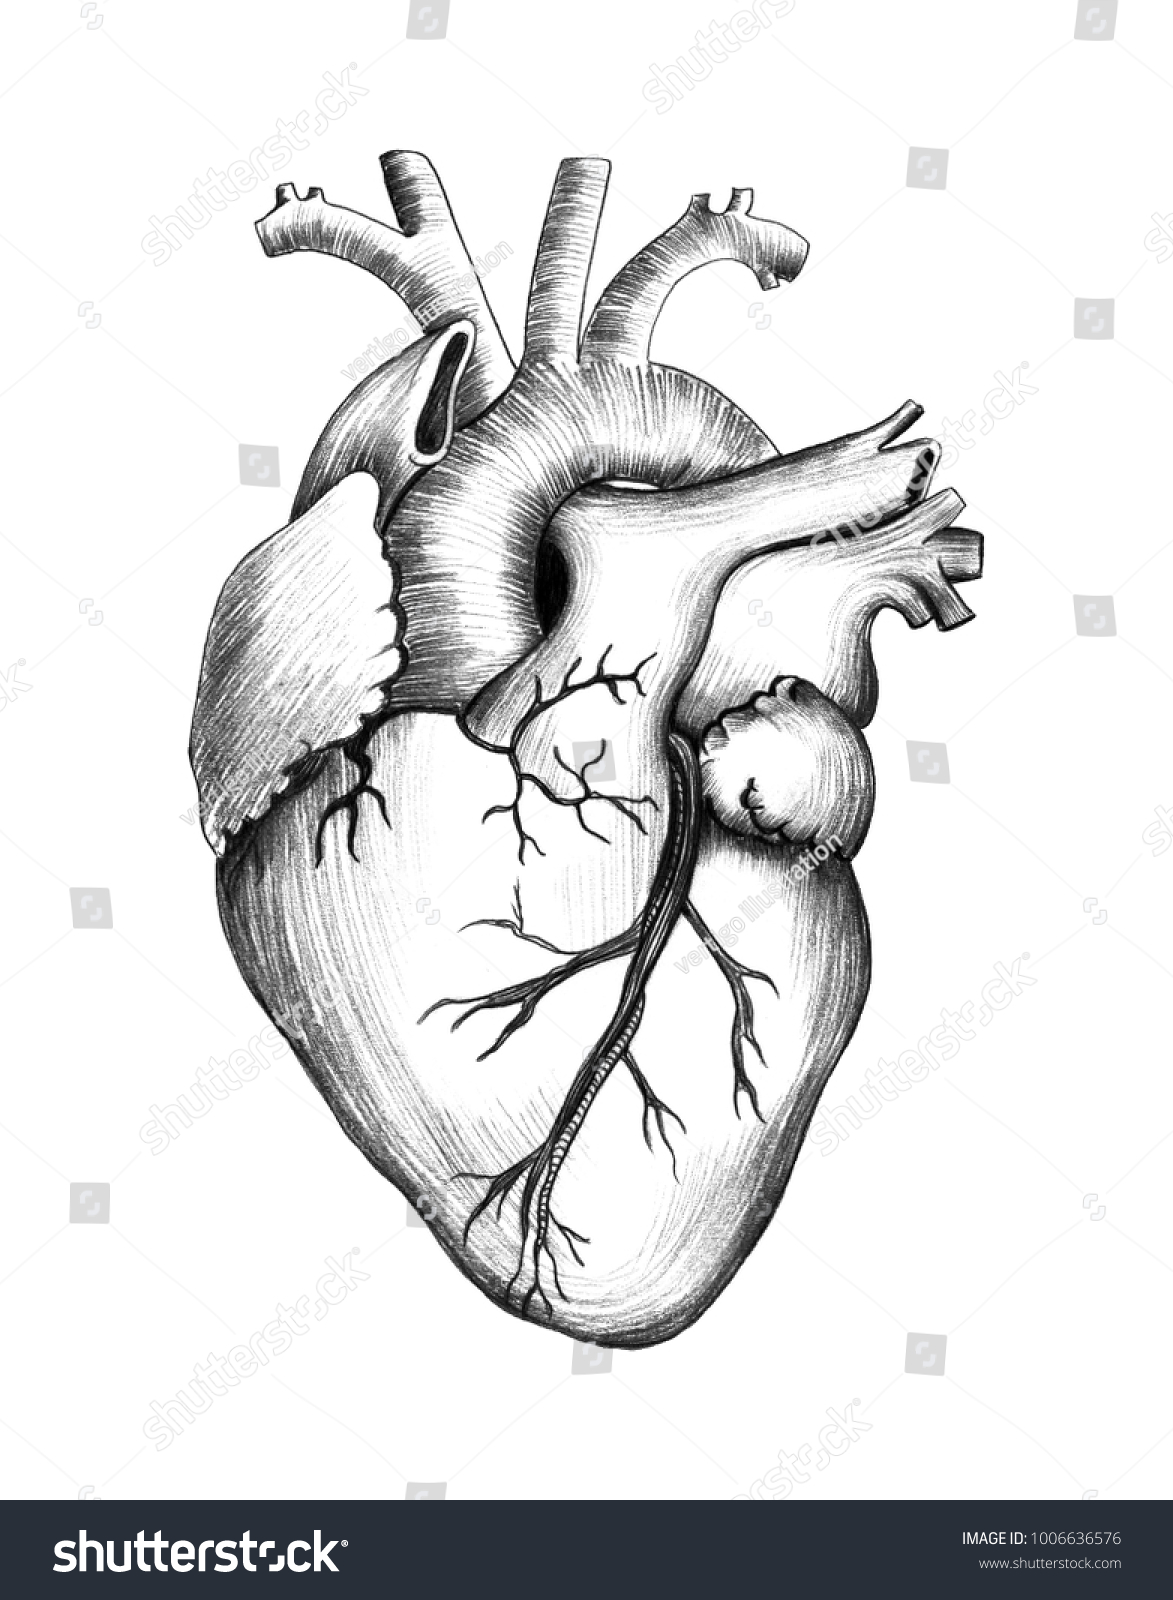 Pencil drawing of heart realistic illustration